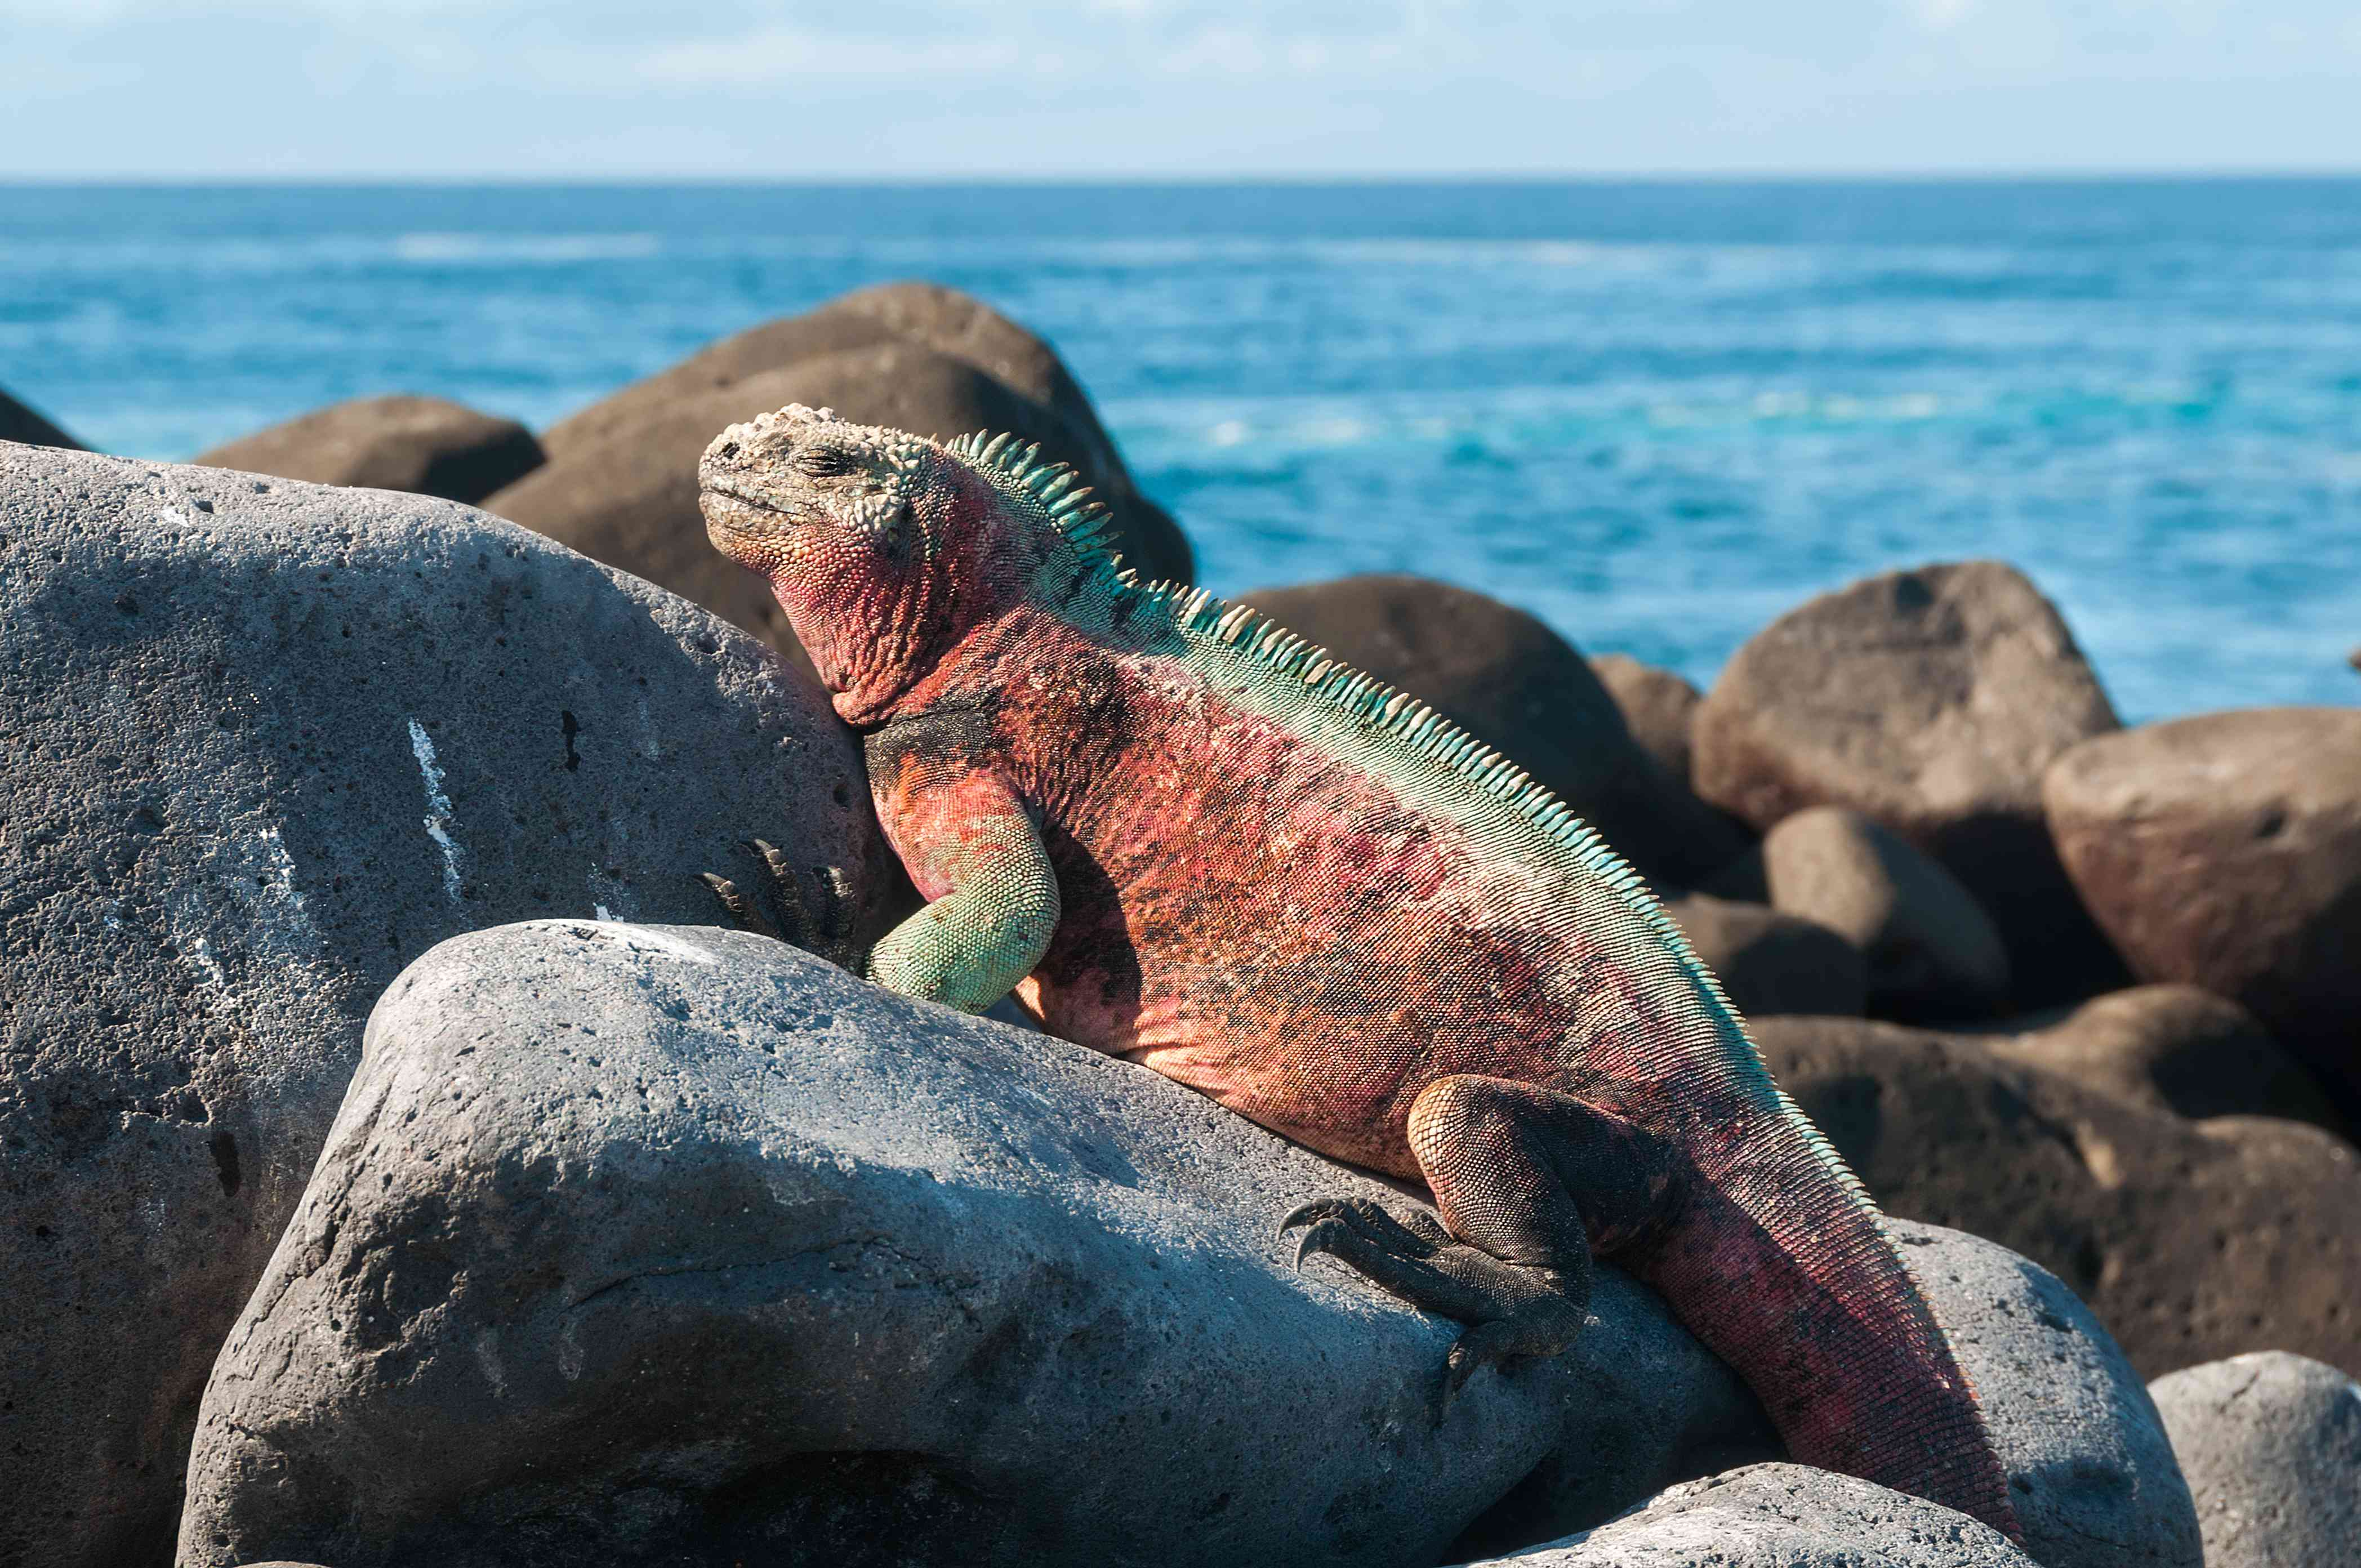 A red Galapagos marine iguana with green trim sunbathing on large rocks near the water